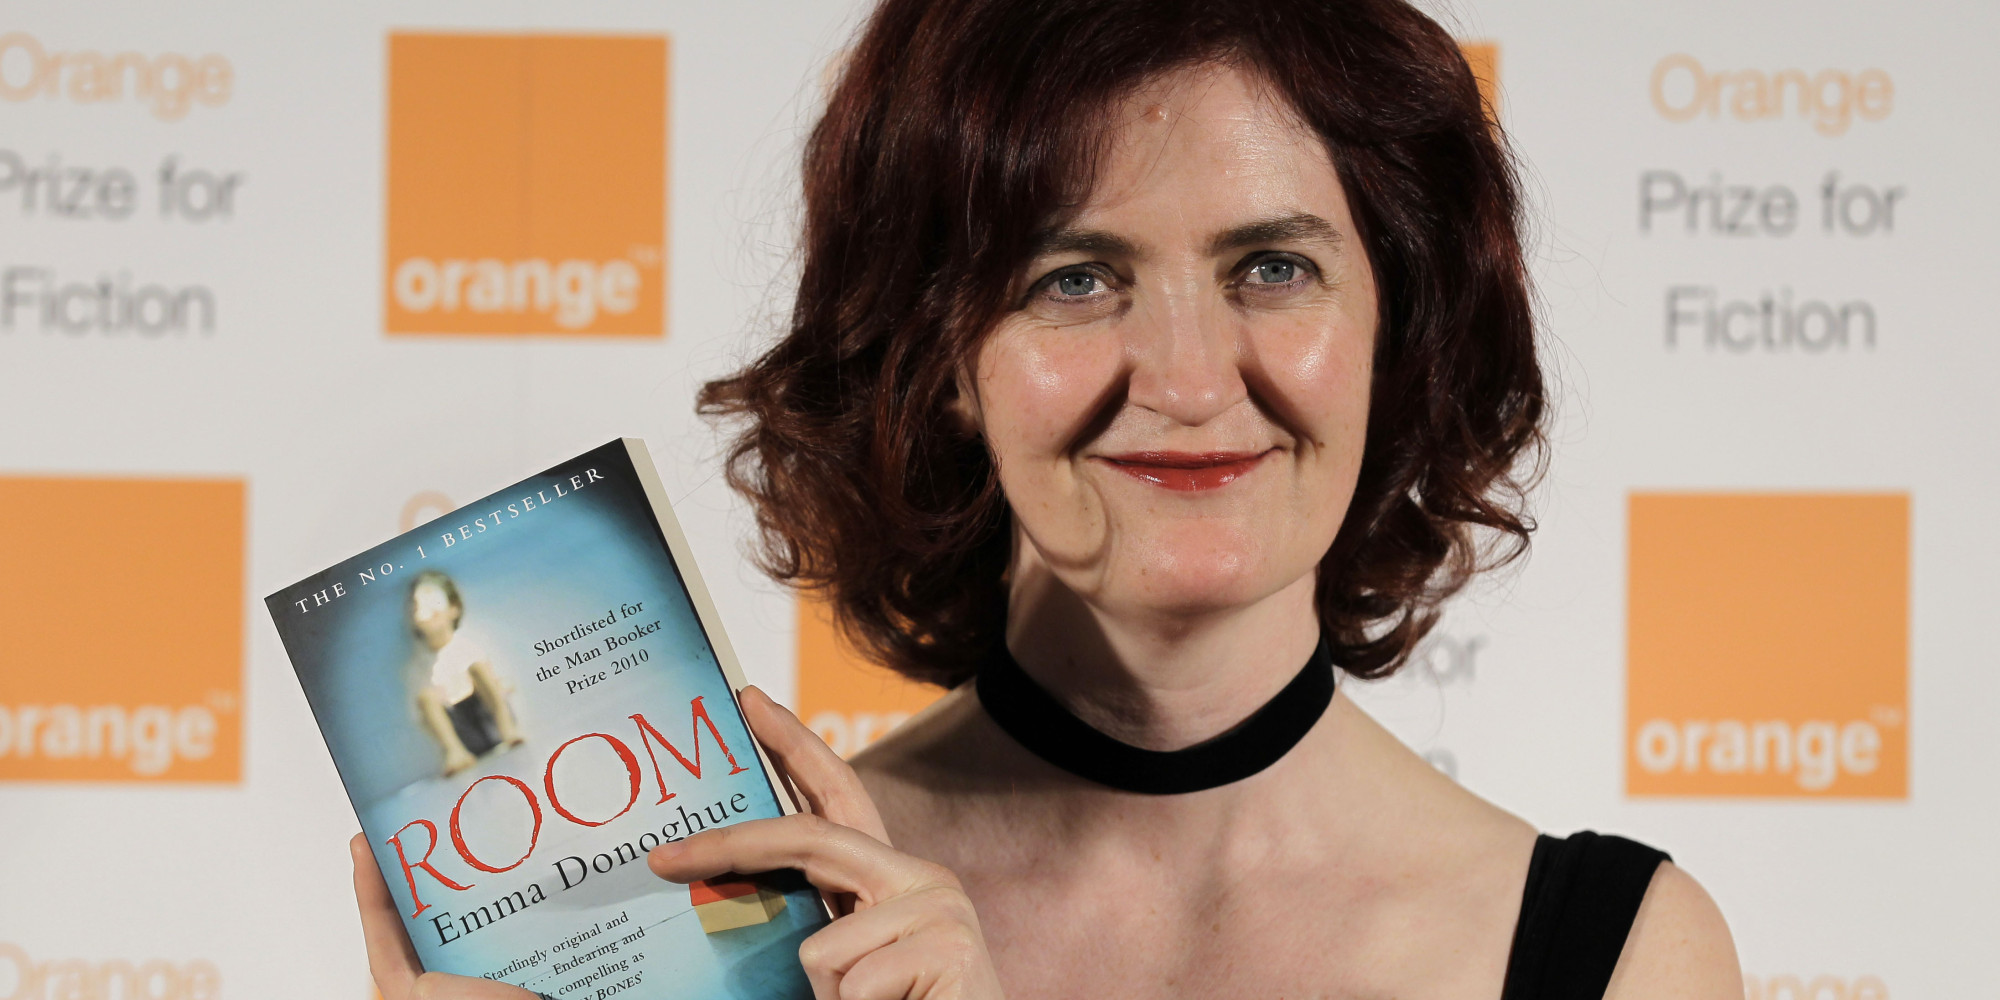 Shortlisted Irish author Emma Donoghue poses with her book 'Room' before the announcement of the 2011 Orange Prize for Fiction, during the awards ceremony at the Royal Festival Hall in London, Wednesday, June 8, 2011. (AP Photo/Sang Tan)